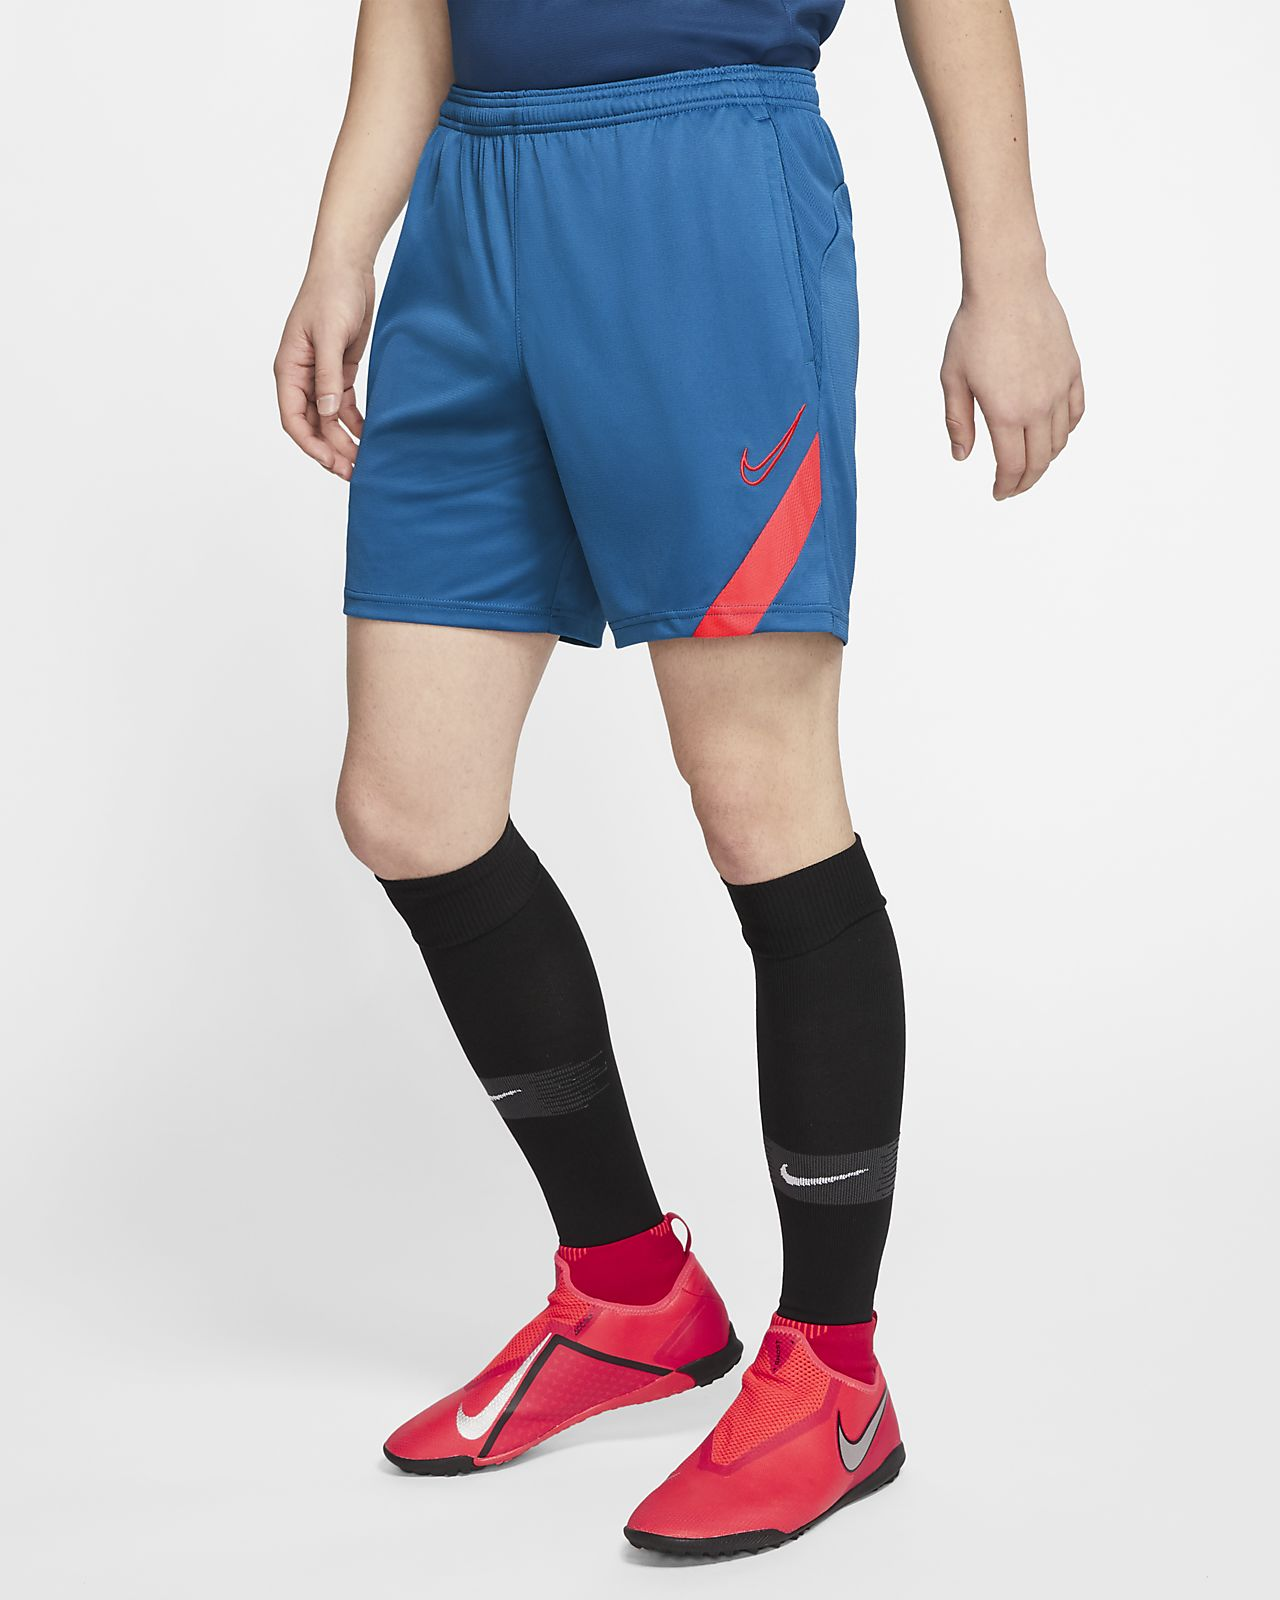 Nike Dri-FIT Academy Pro Men's Soccer Shorts